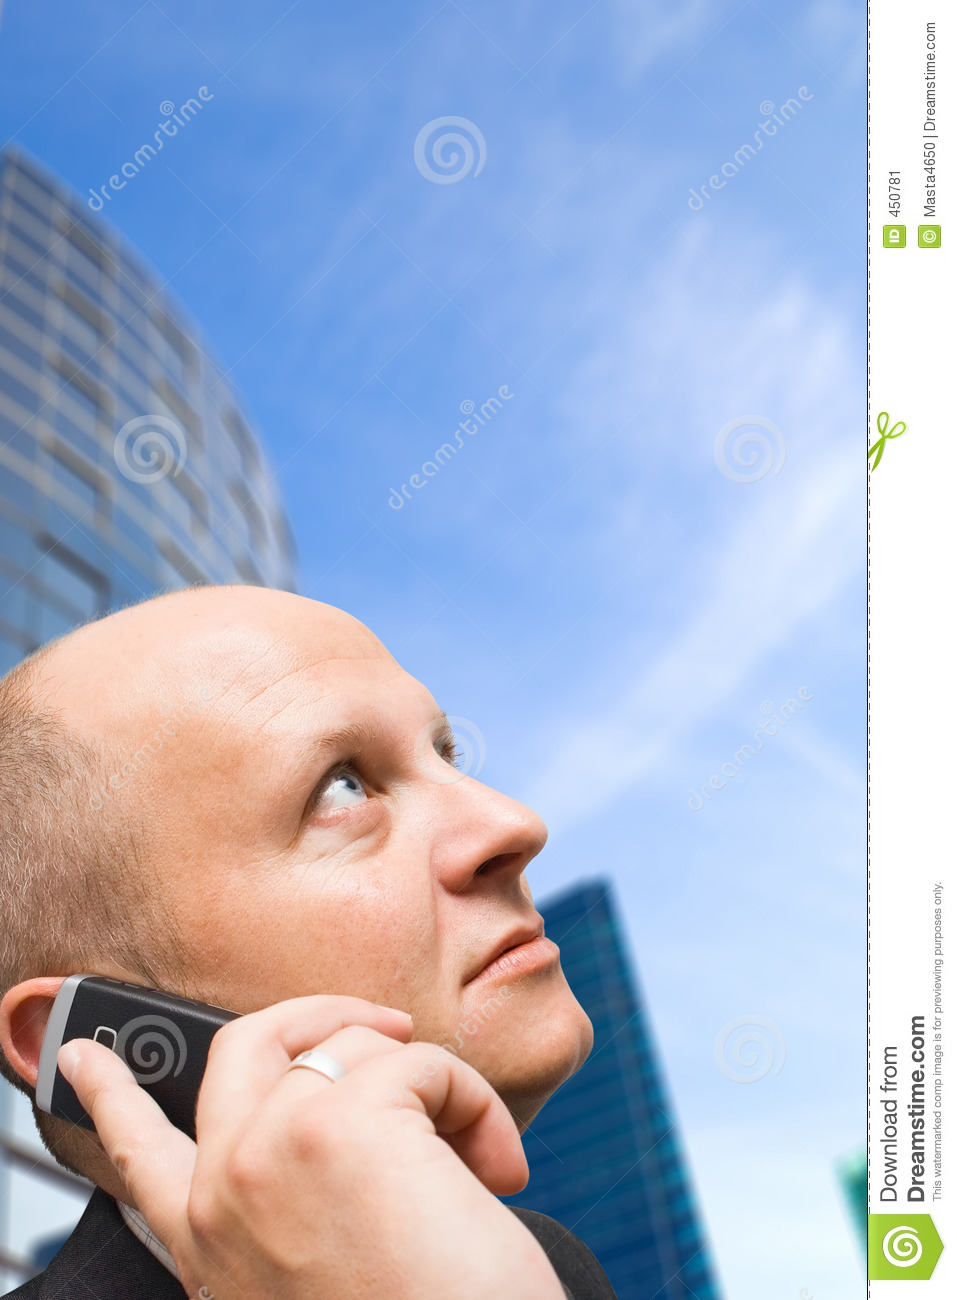 Download CEO stock image. Image of manager, businessman, executive - 450781